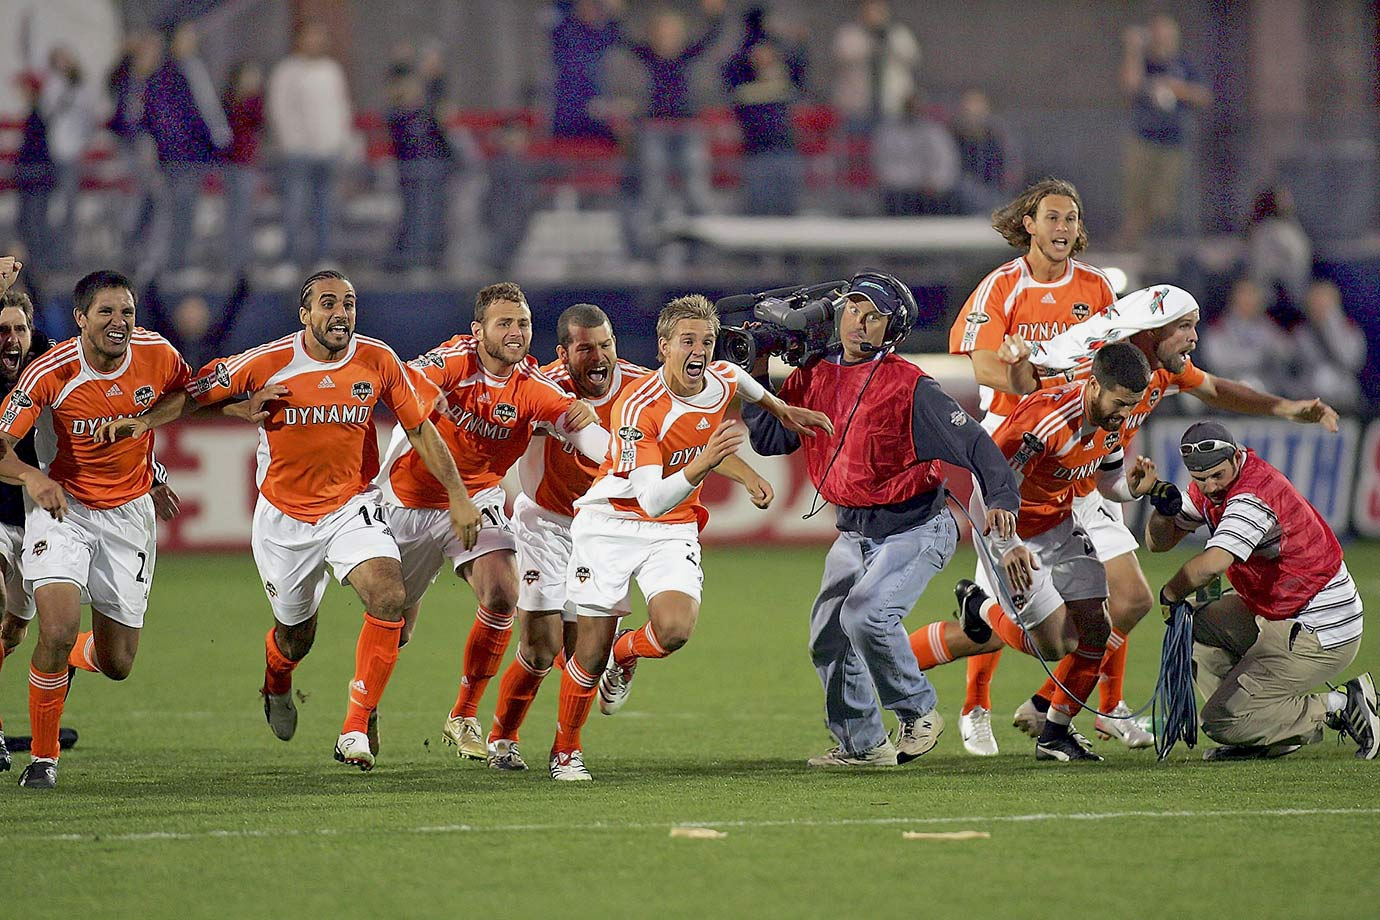 <p>2006 — Houston Dynamo (beat New England Revolution in penalty kicks after 1-1 draw)</p>